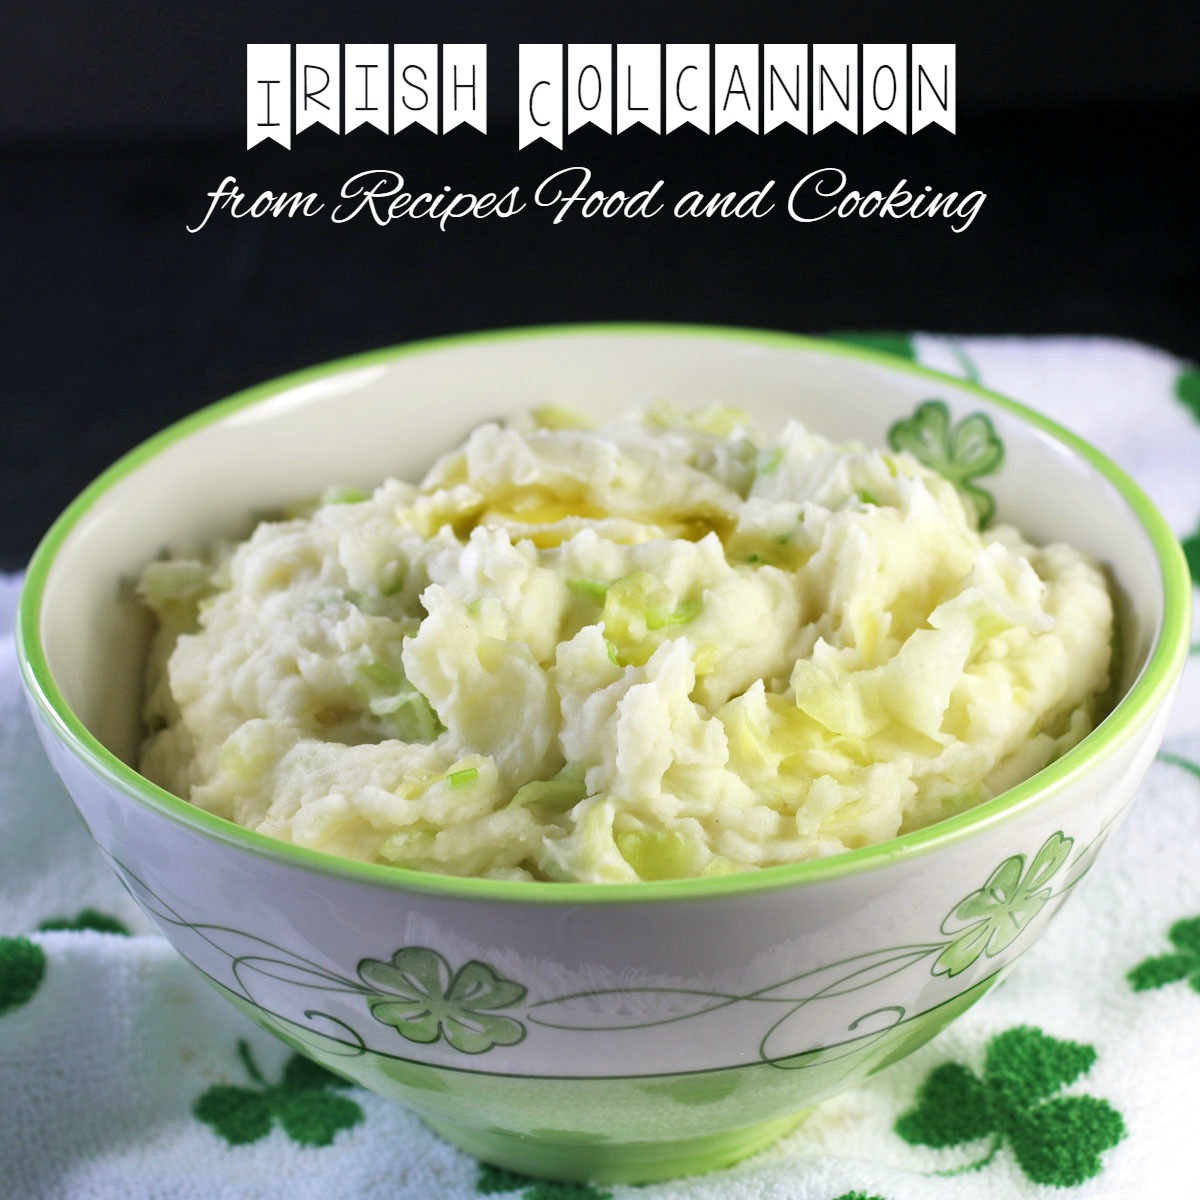 Irish Colcannon - Recipes Food and Cooking